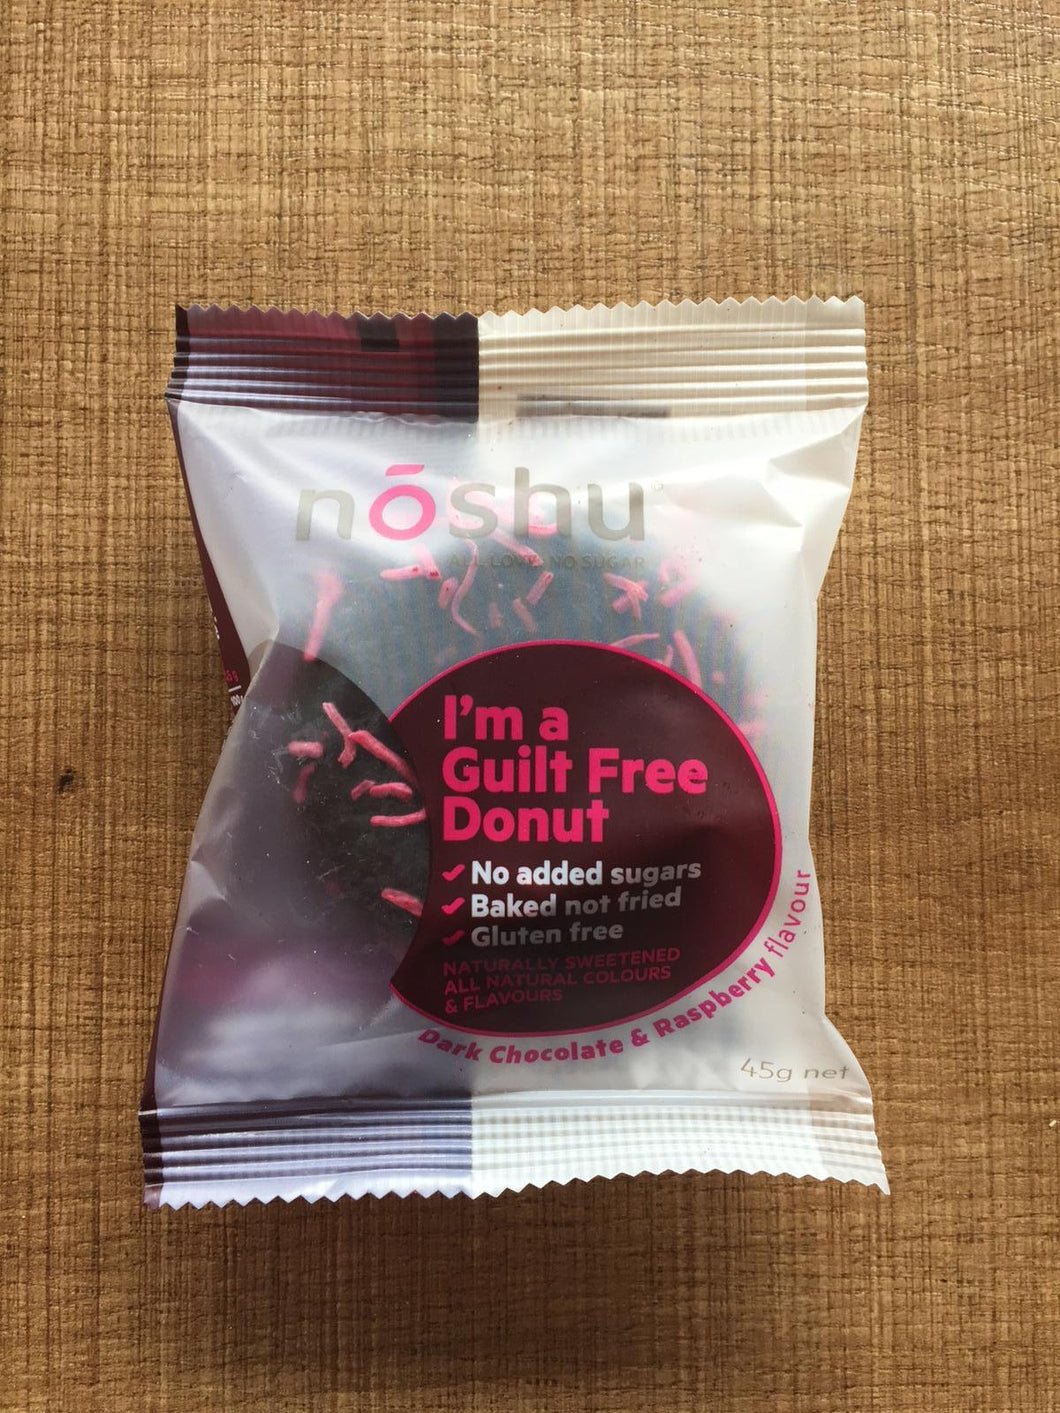 Noshu Donuts - Dark Chocolate & Raspberry $4.6 (available in-store only)